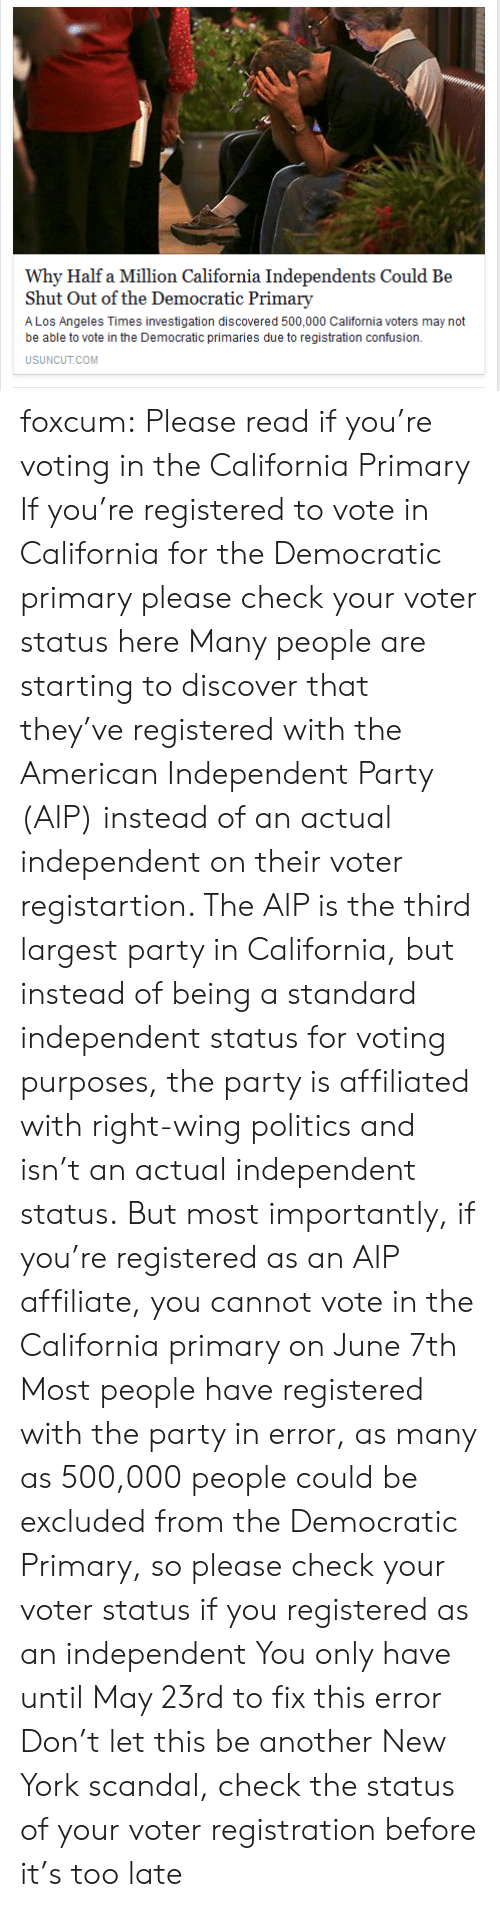 New York, Party, and Politics: Why Half a Million California Independents Could Be  Shut Out of the Democratic Primary  A Los Angeles Times investigation discovered 500,000 California voters may not  be able to vote in the Democratic primaries due to registration confusion.  USUNCUT.COM foxcum:  Please read if you're voting in the California Primary  If you're registered to vote in California for the Democratic primary please check your voter status here  Many people are starting to discover that they've registered with the American Independent Party (AIP) instead of an actual independent on their voter registartion. The AIP is the third largest party in California, but instead of being a standard independent status for voting purposes, the party is affiliated with right-wing politics and isn't an actual independent status.  But most importantly, if you're registered as an AIP affiliate, you cannot vote in the California primary on June 7th  Most people have registered with the party in error, as many as 500,000 people could be excluded from the Democratic Primary, so please check your voter status if you registered as an independent  You only have until May 23rd to fix this error  Don't let this be another New York scandal, check the status of your voter registration before it's too late